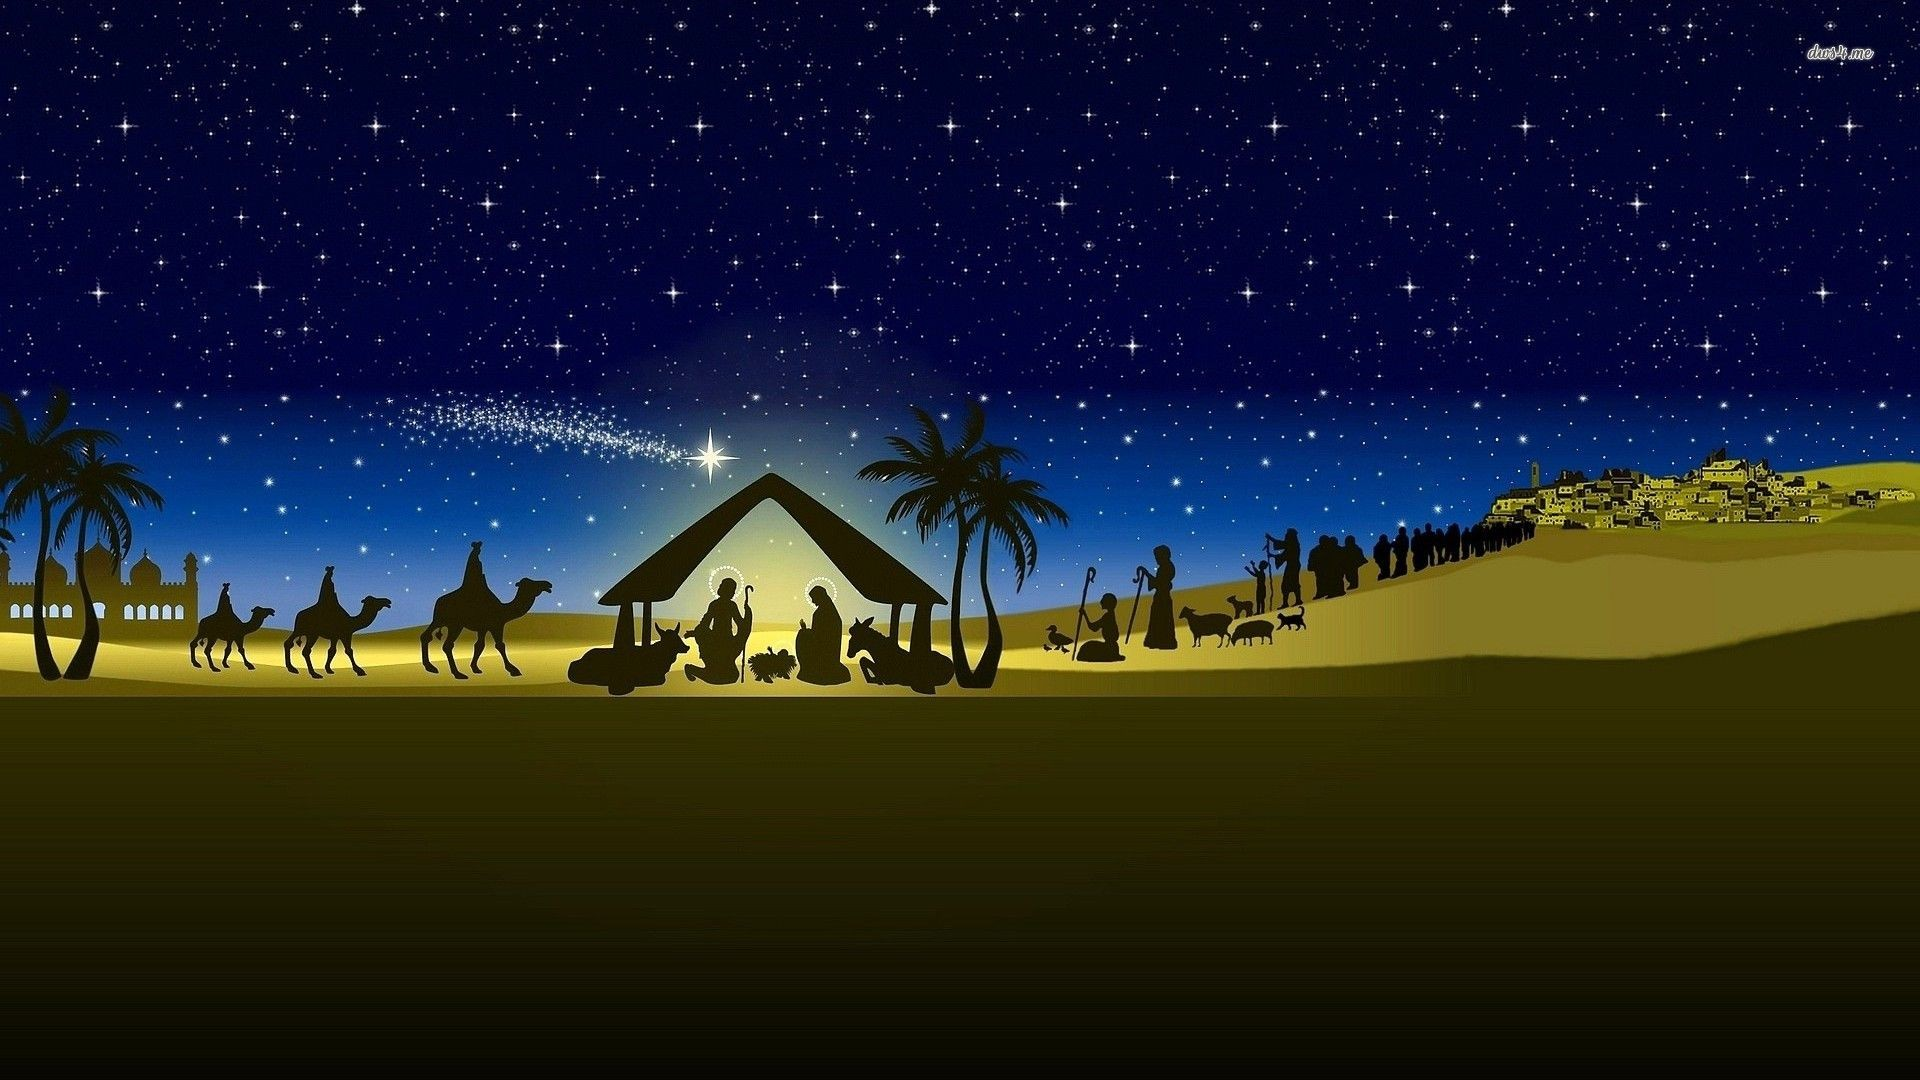 Christmas For Iphone Wallpaper: Christmas Nativity Scene Wallpaper ·① Download Free HD